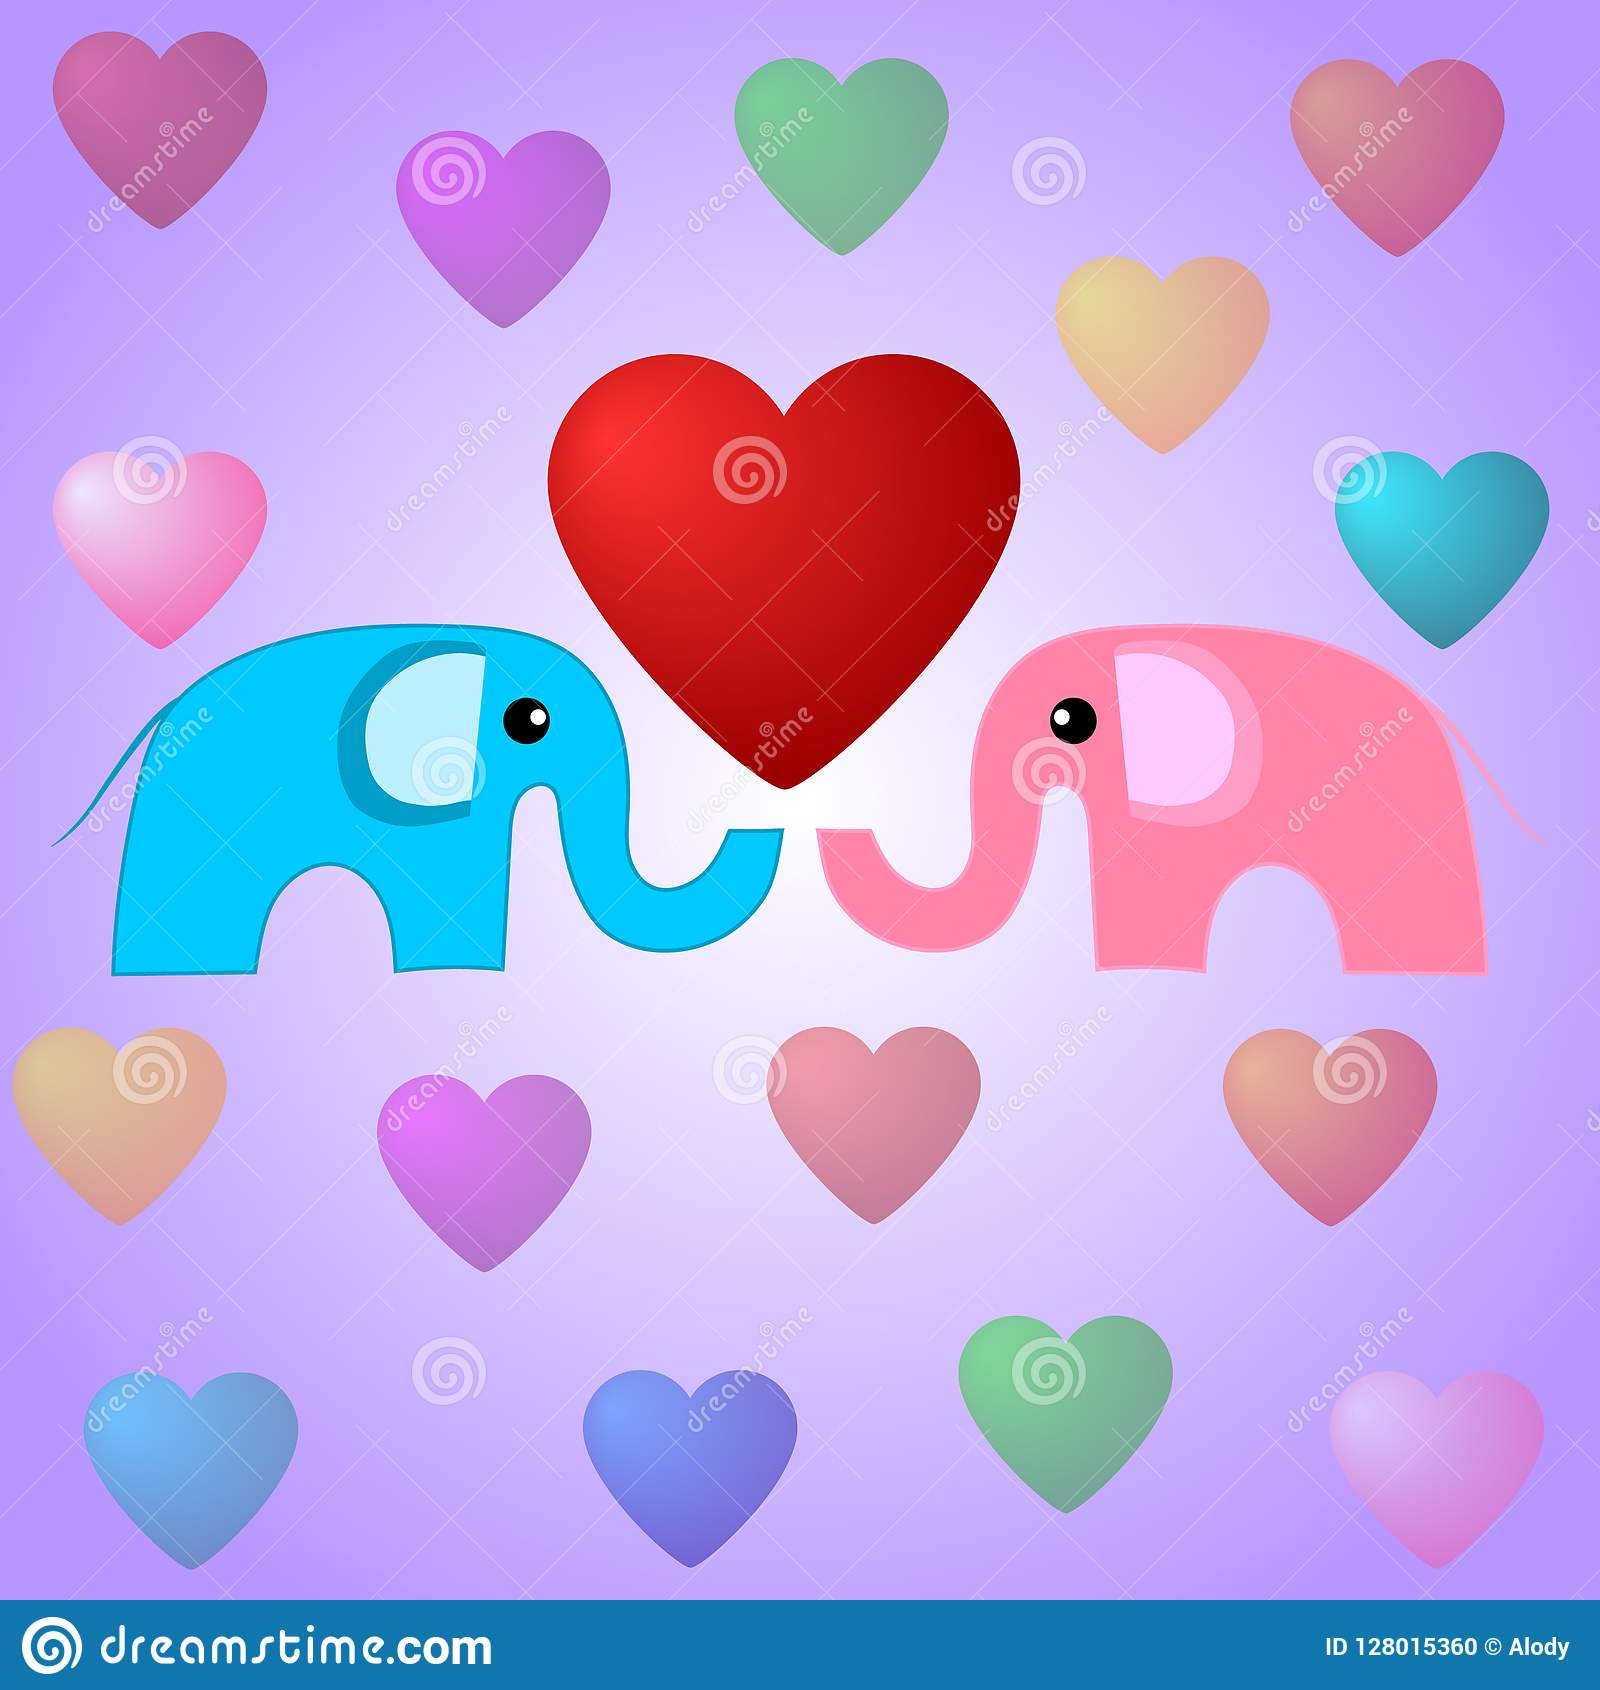 Cute elephants and hearts. Valentines day illustration. Elephants in love. Vector Illustration for Your Design.